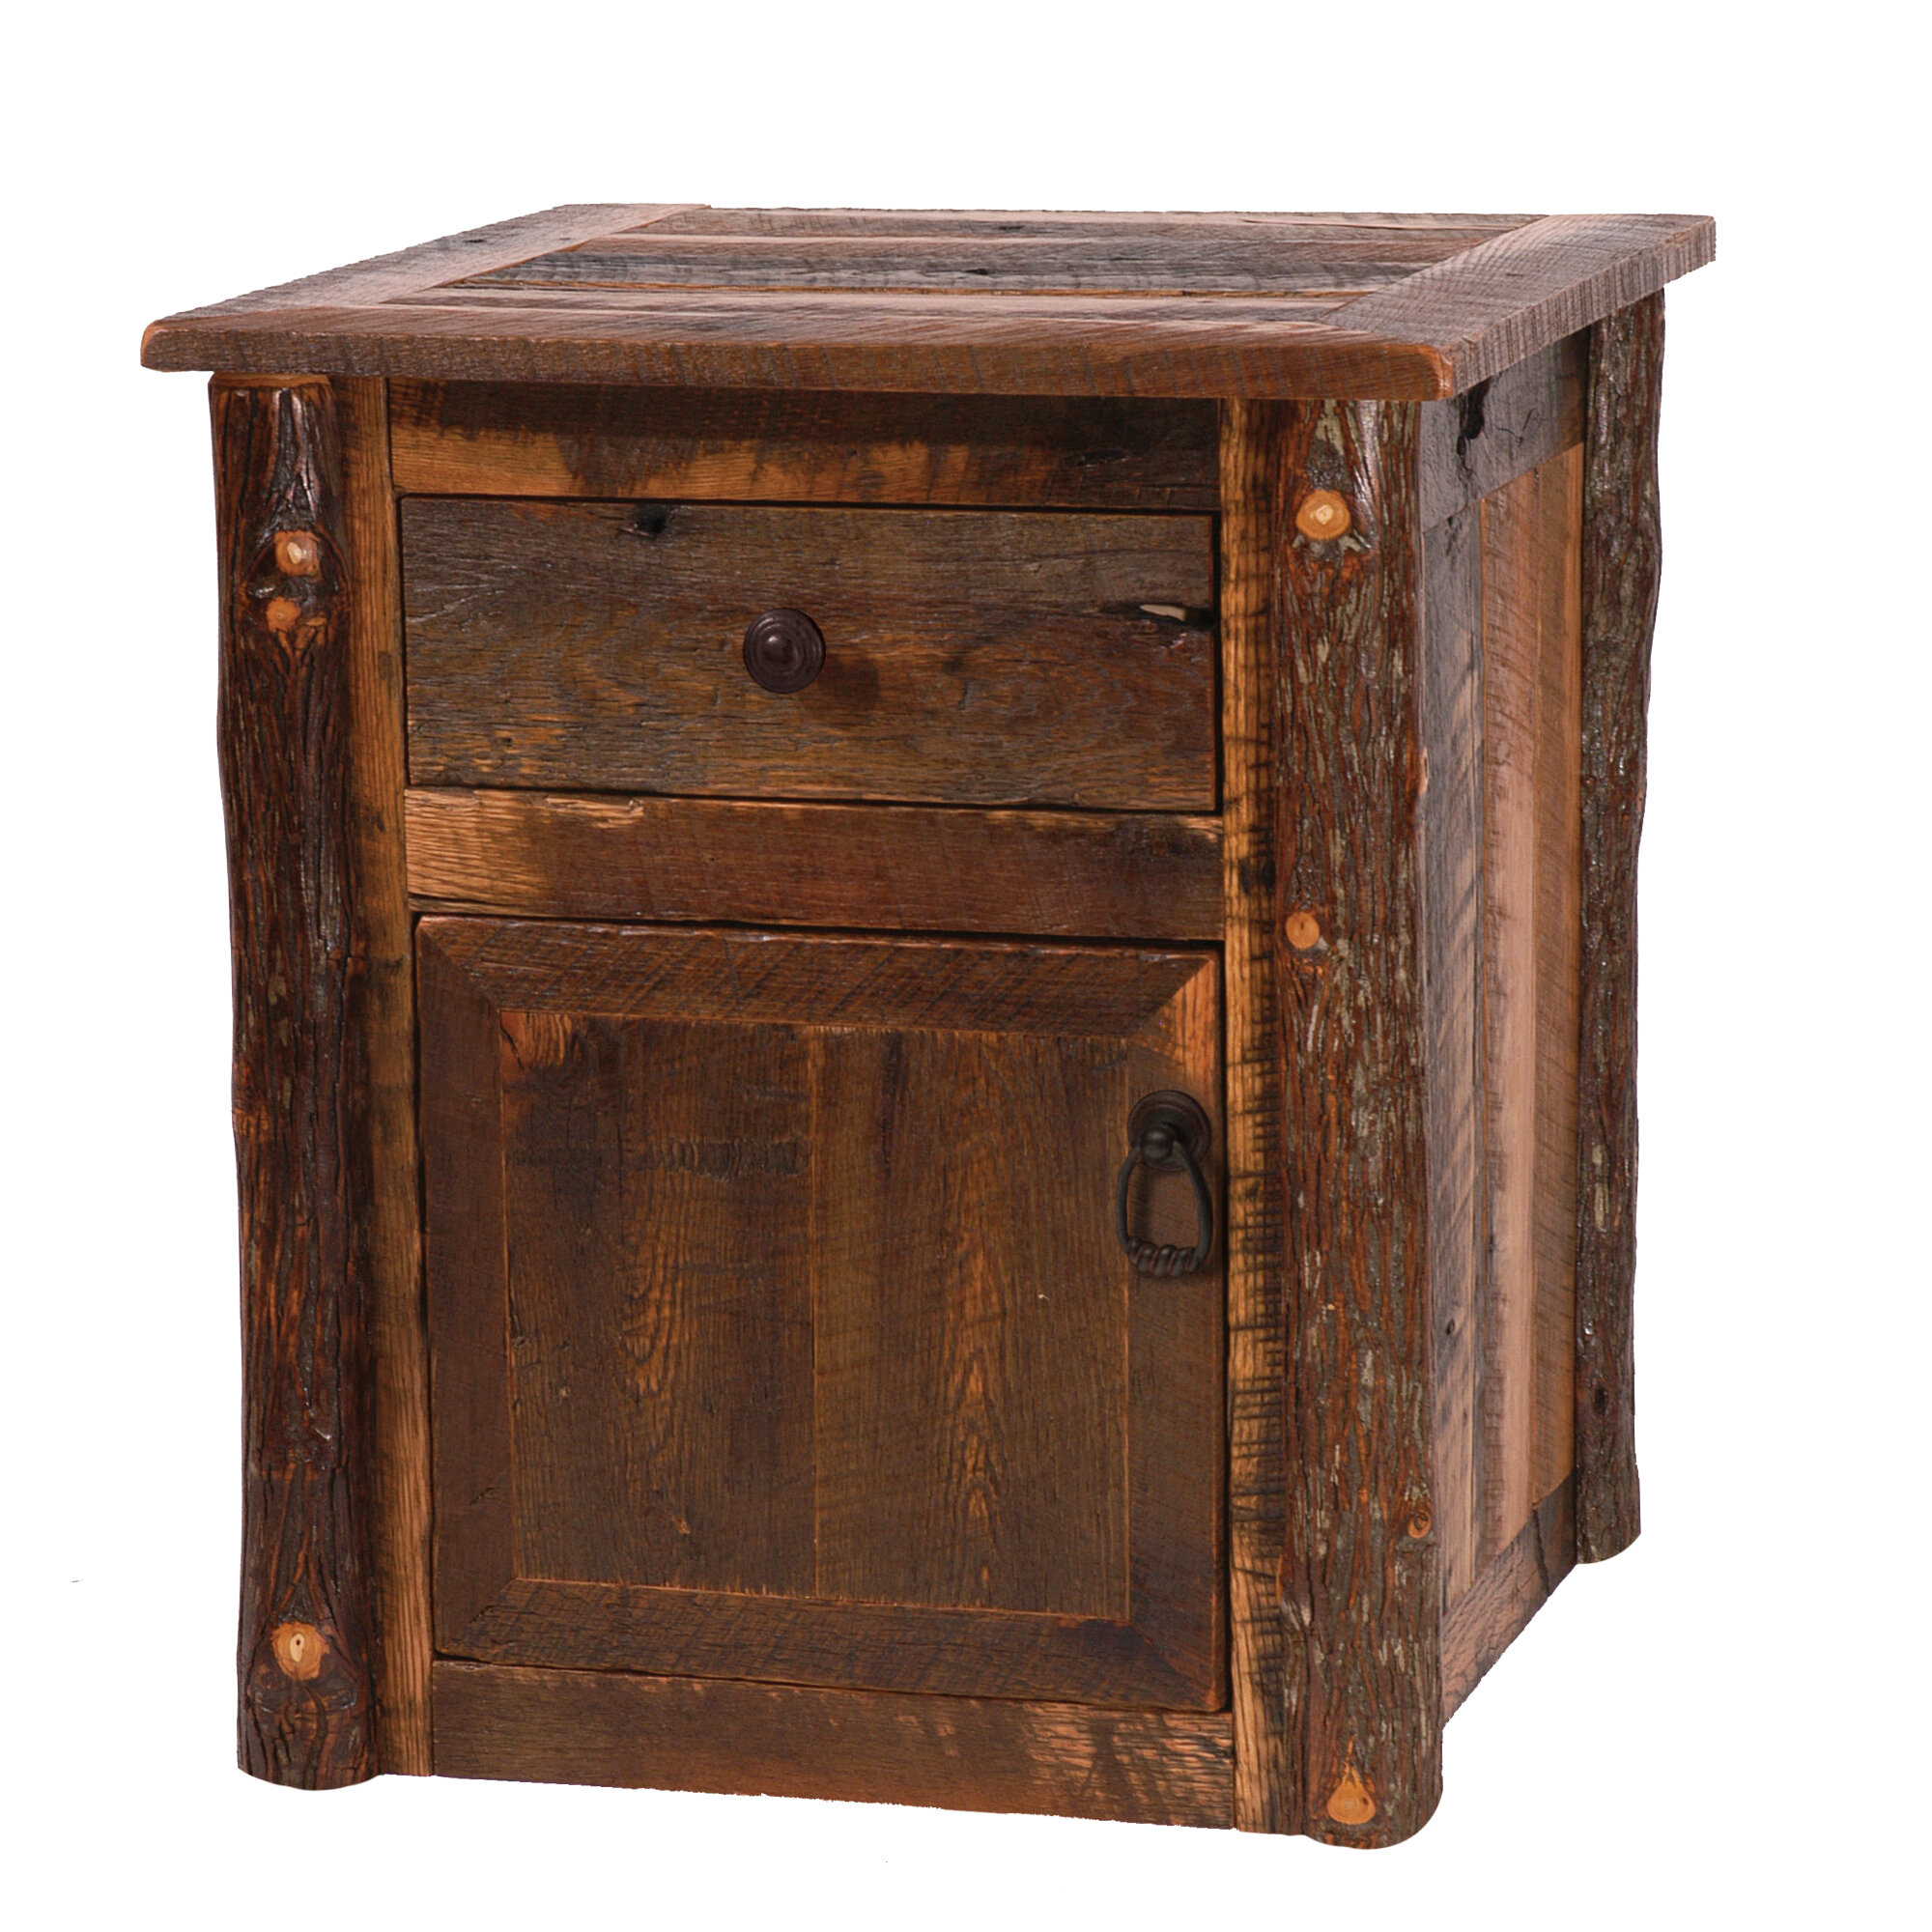 Terrific Barnwood End Table With Storage Interior Design Ideas Gentotryabchikinfo